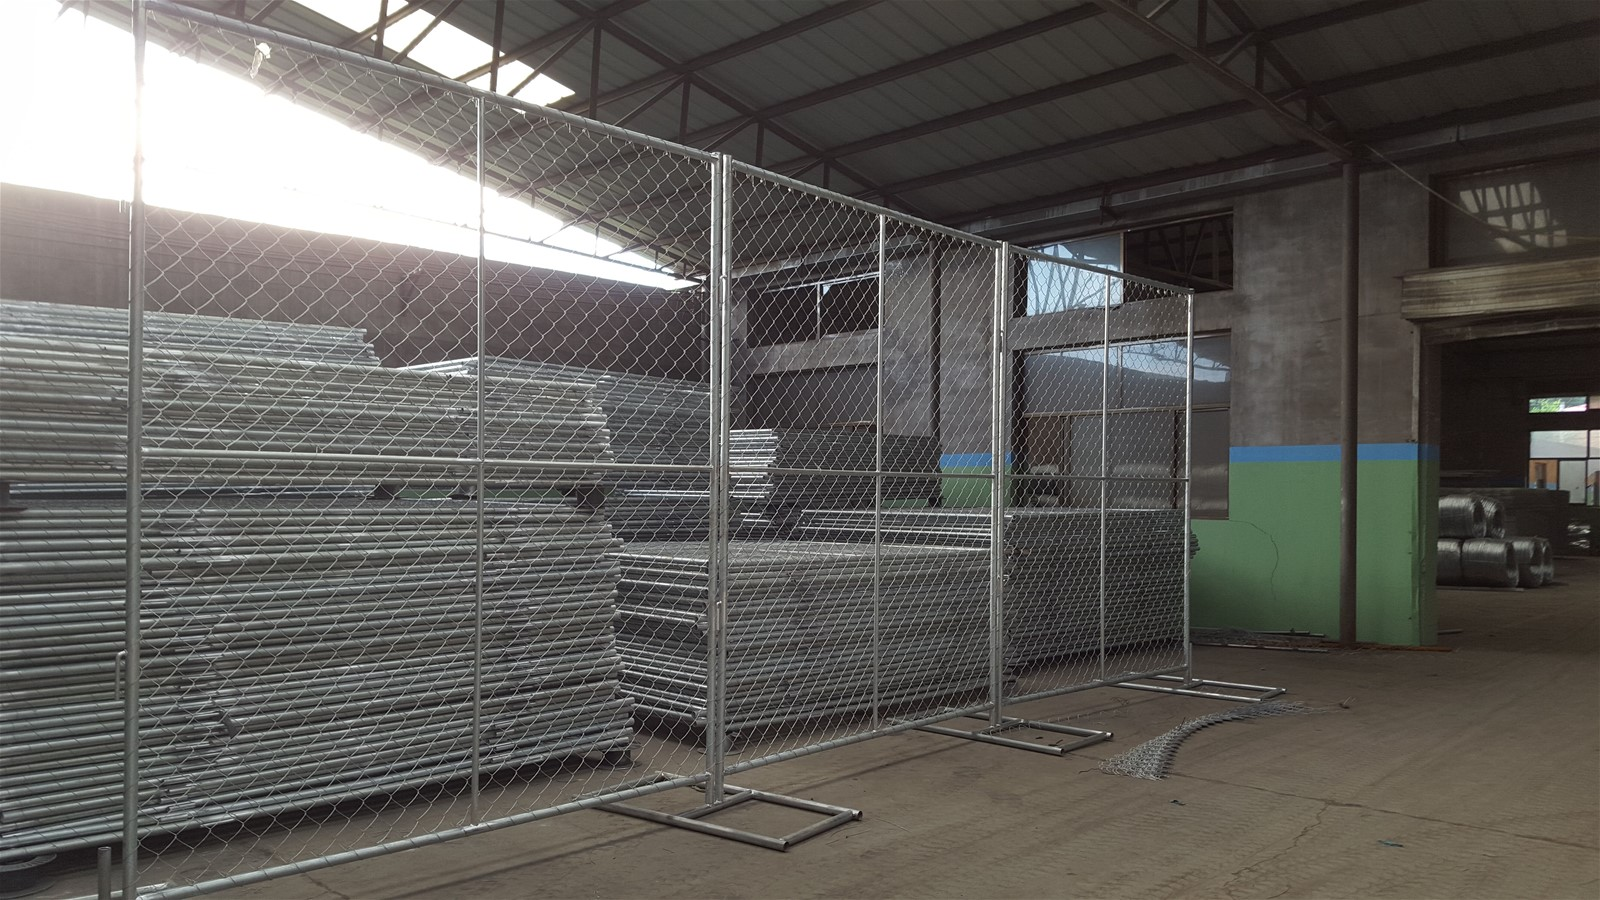 Temporary Chain Link Protection Fence